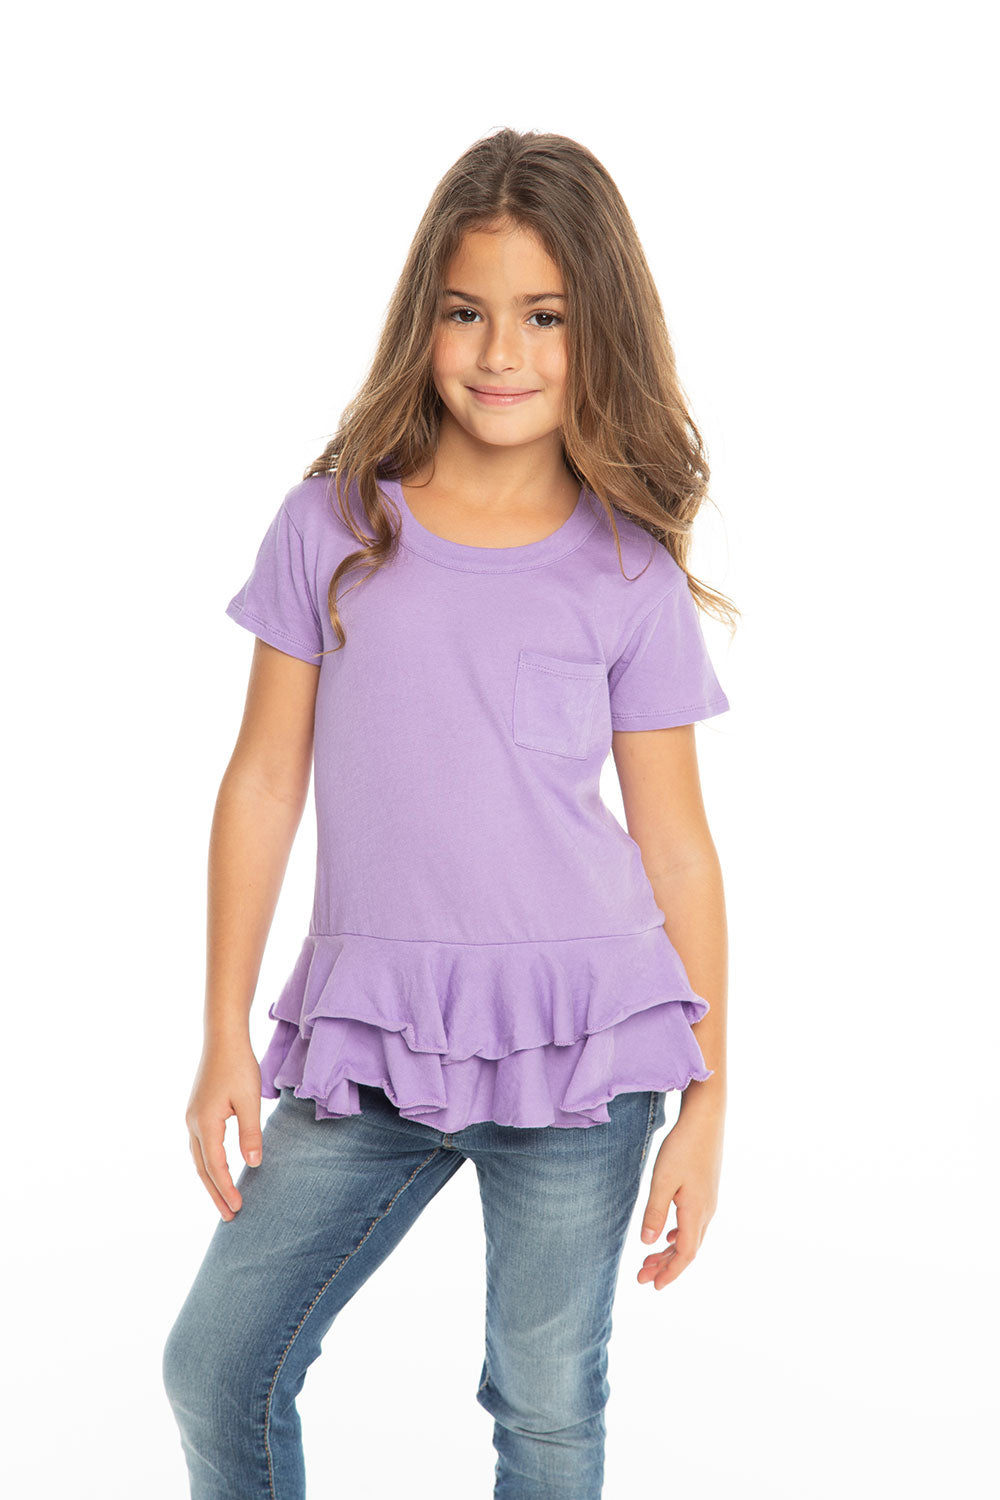 Gauzy Cotton S/S Crew Neck Double Peplum Pocket Tee Girls chaserbrand4.myshopify.com